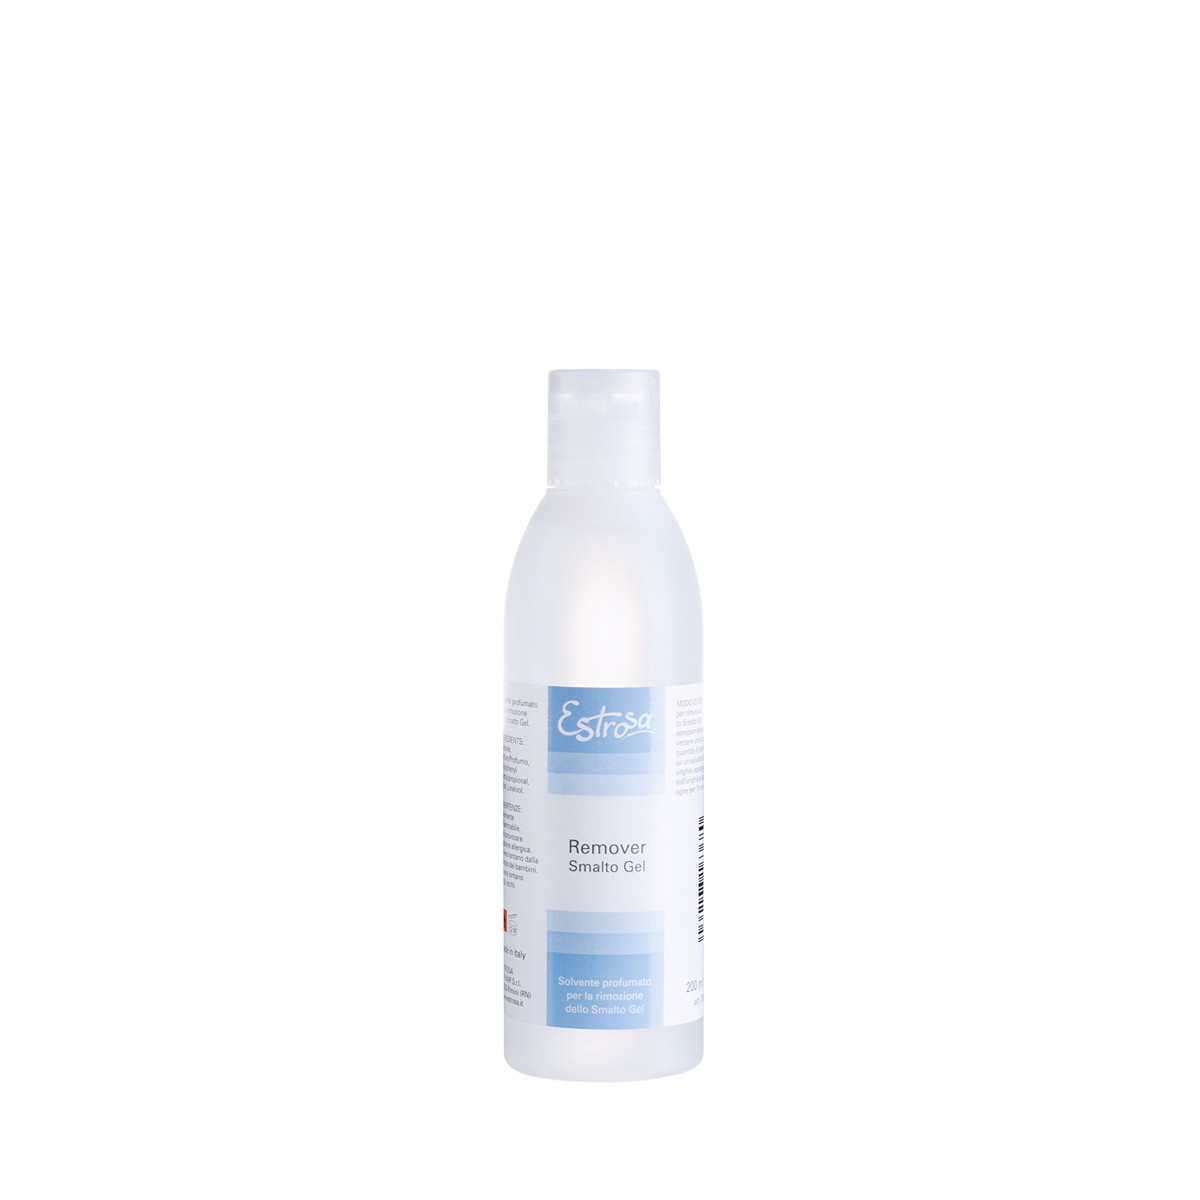 125 ml Remover Smalto Gel Estrosa